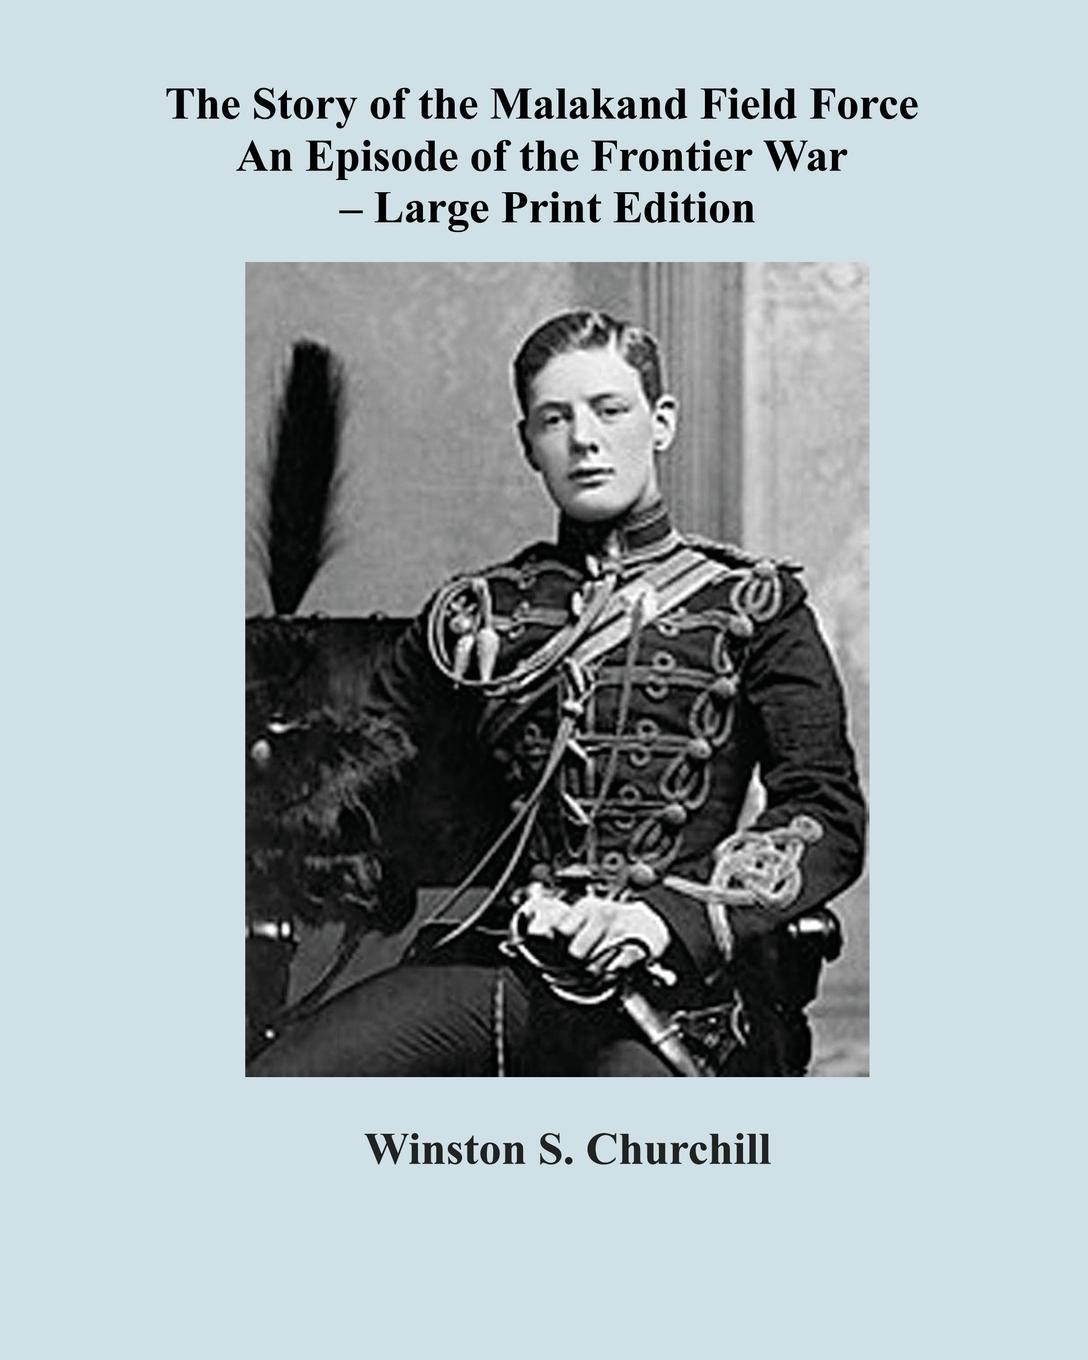 The Story of the Malakand Field Force - Large Print Edition. Winston Spencer Churchill, Sam Sloan